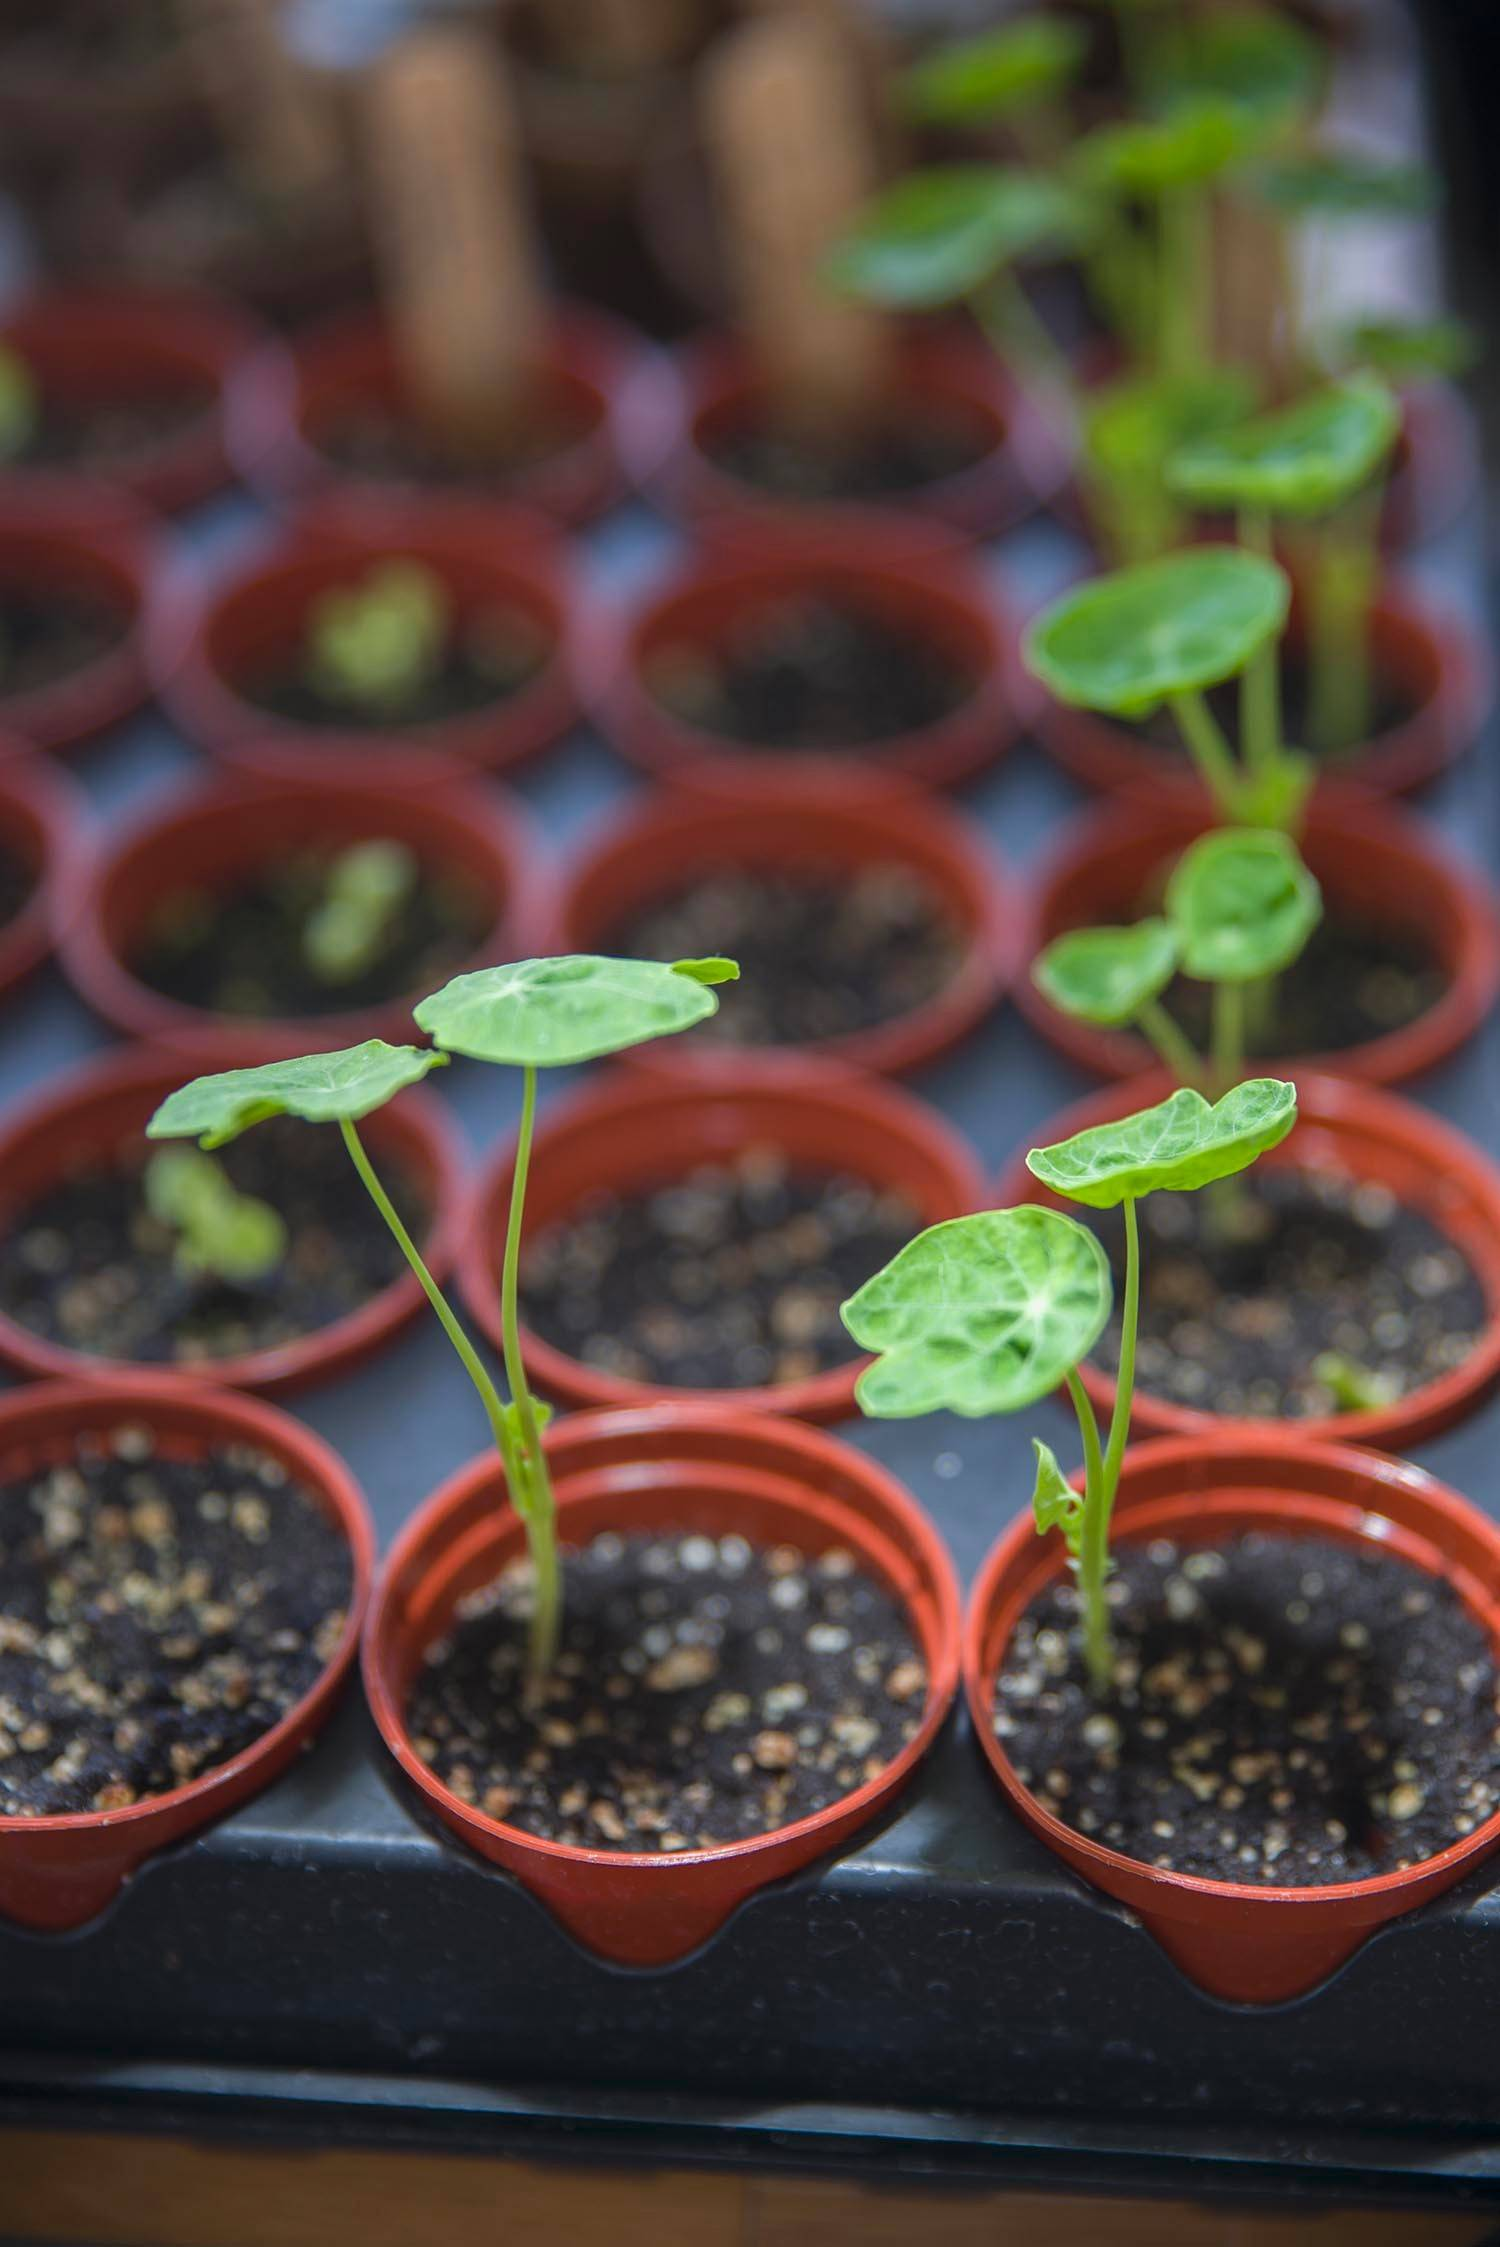 When sowing seeds indoors, keep pots in a warm place until growth appears, then move to a sunny location.